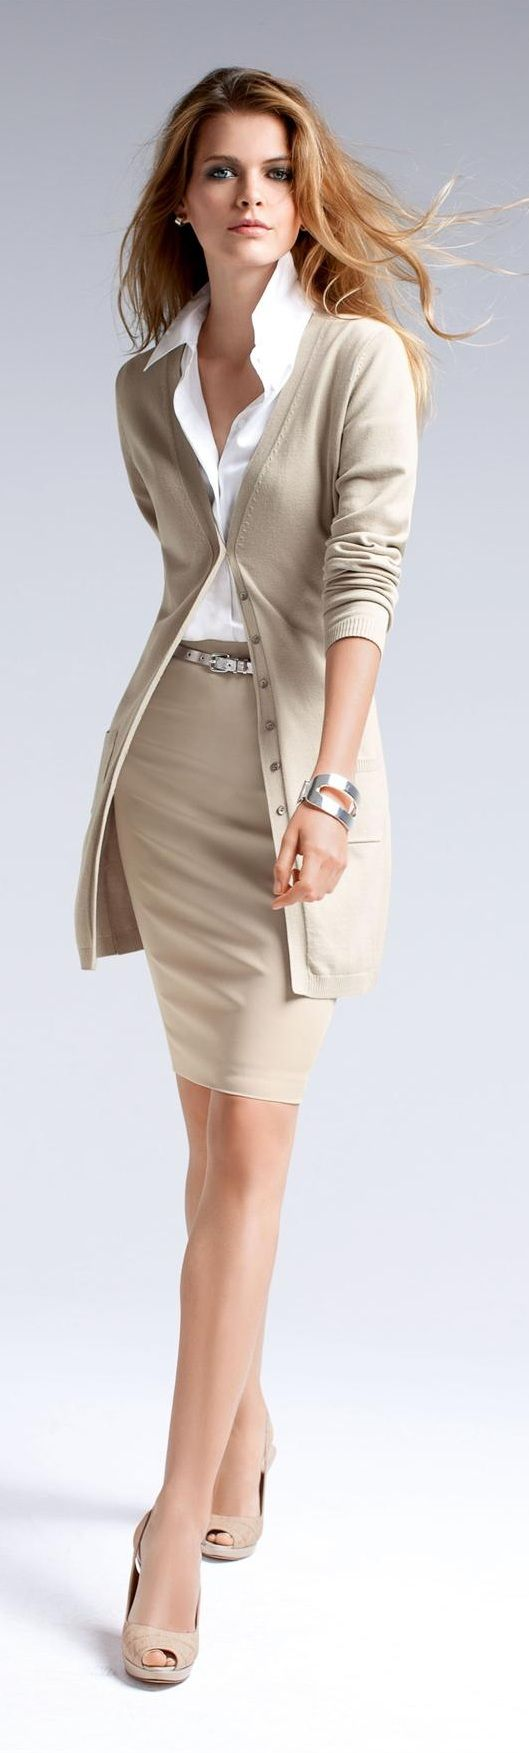 ☼Madeleine ~ lower hemline for a woman of a certain age but overall look is sensational!